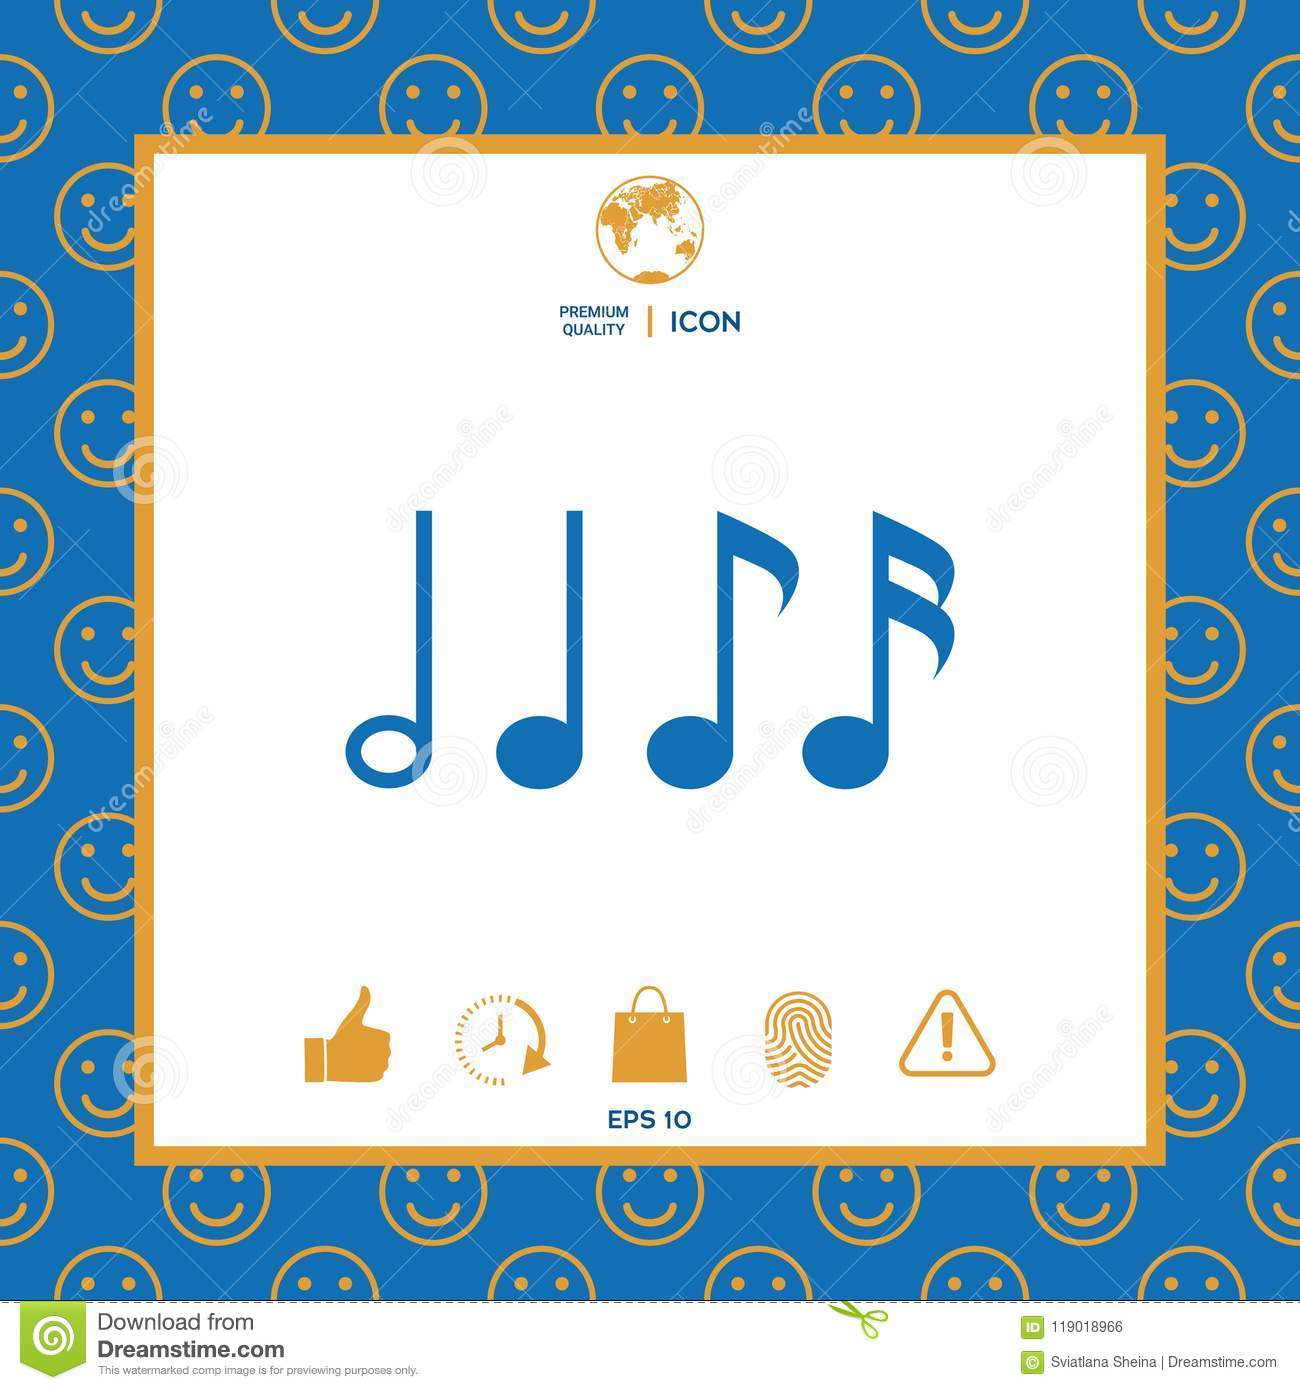 Symbol Of Music Notes Sixteenth Note Eighth Note Quarter Note